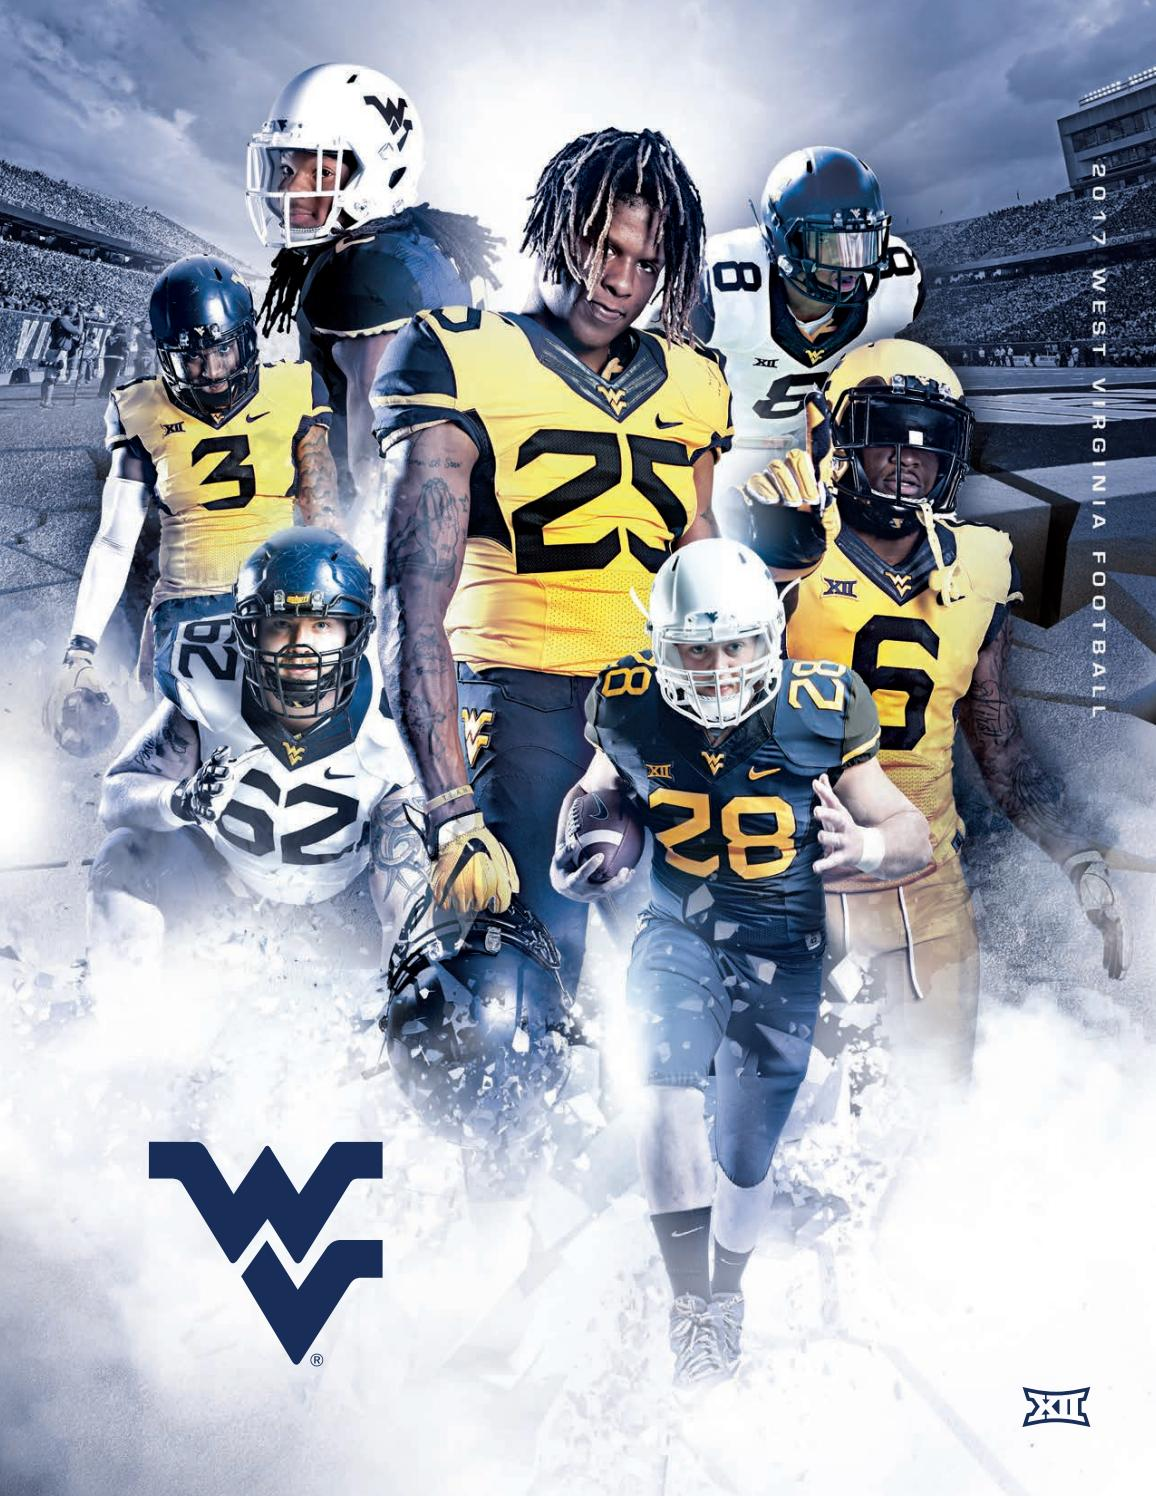 2017 WVU Football Guide by Joe Swan - issuu a66329c52